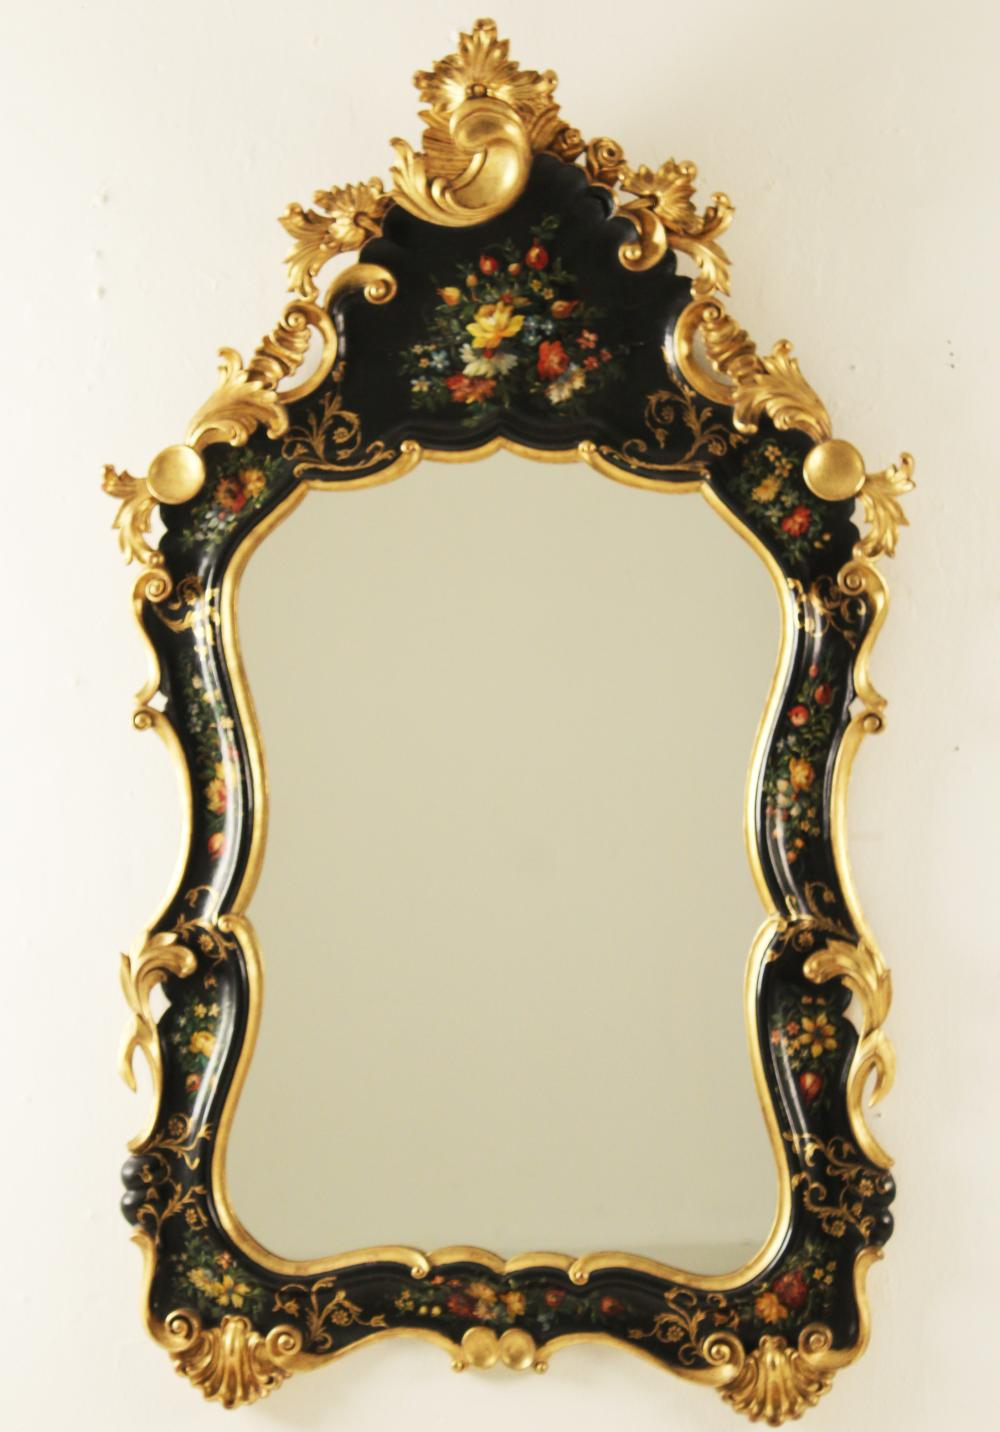 Lot 196: POLYCHROME VENETIAN STYLE MIRROR